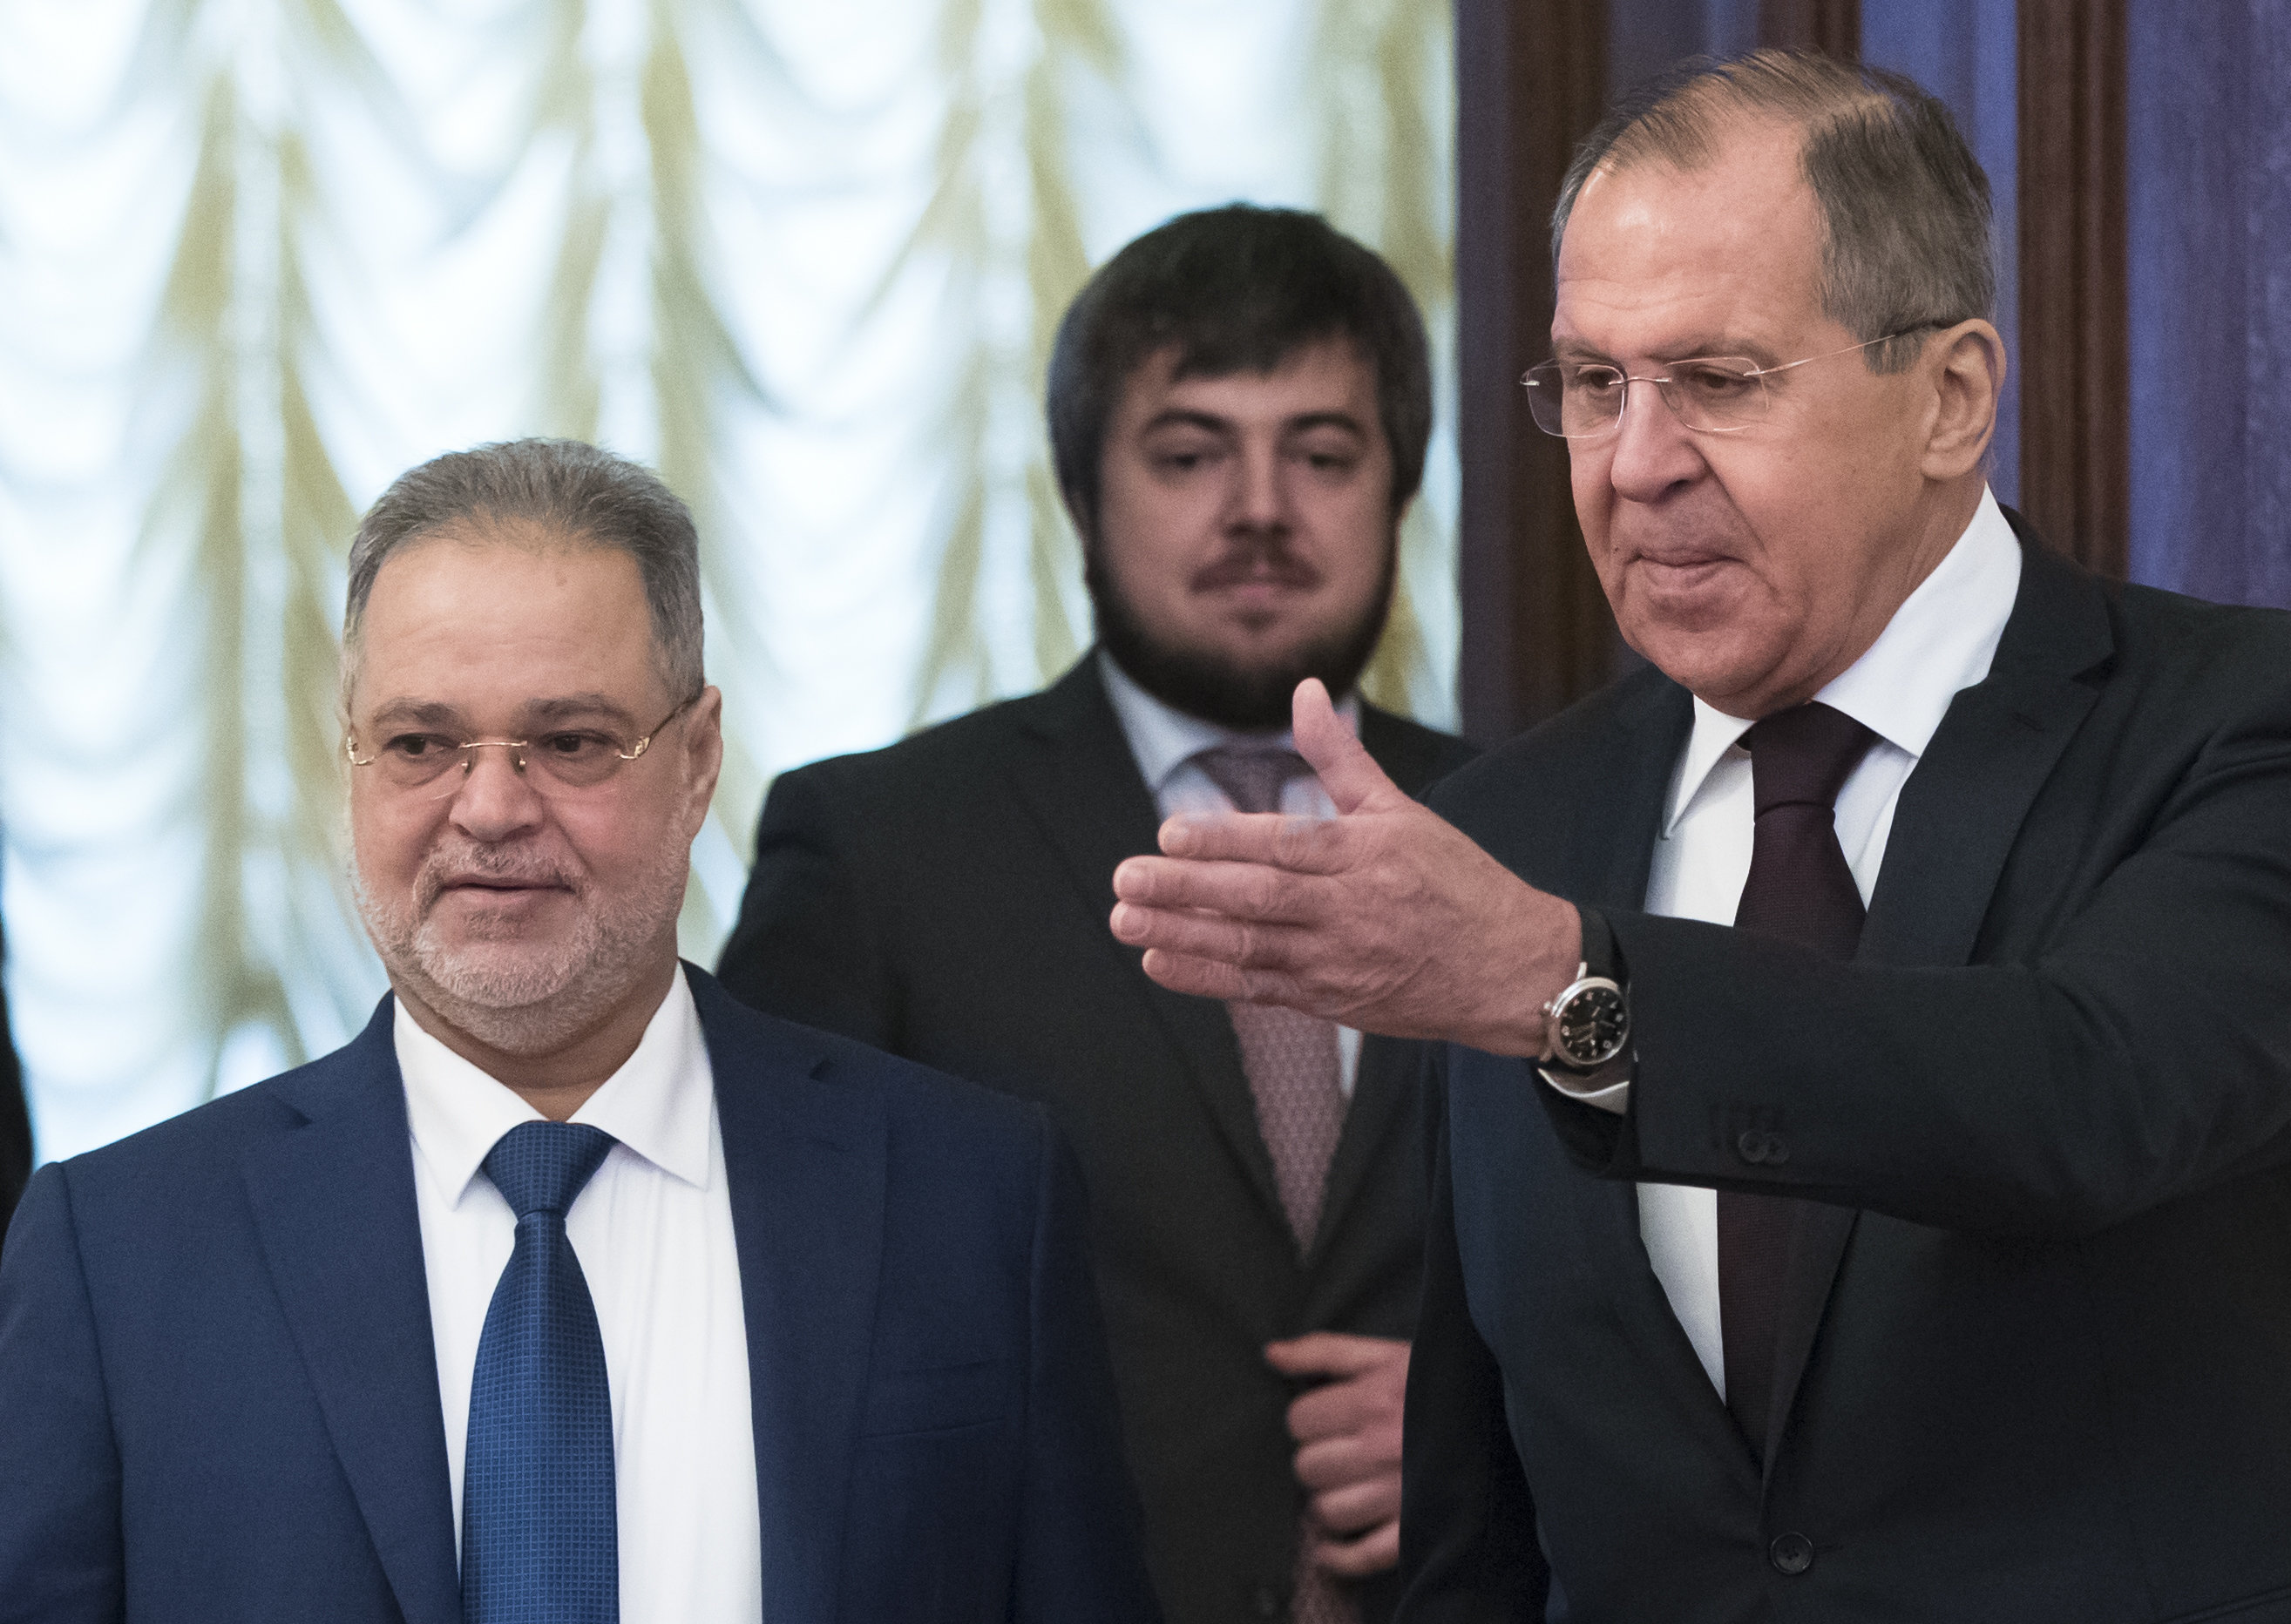 Russian Foreign Minister Sergei Lavrov, right, welcomes Yemeni Foreign Minister Abdul Malik Al Mekhlafi for talks in Moscow, Russia, Jan. 22, 2018. (Pavel Golovkin/AP Photo)